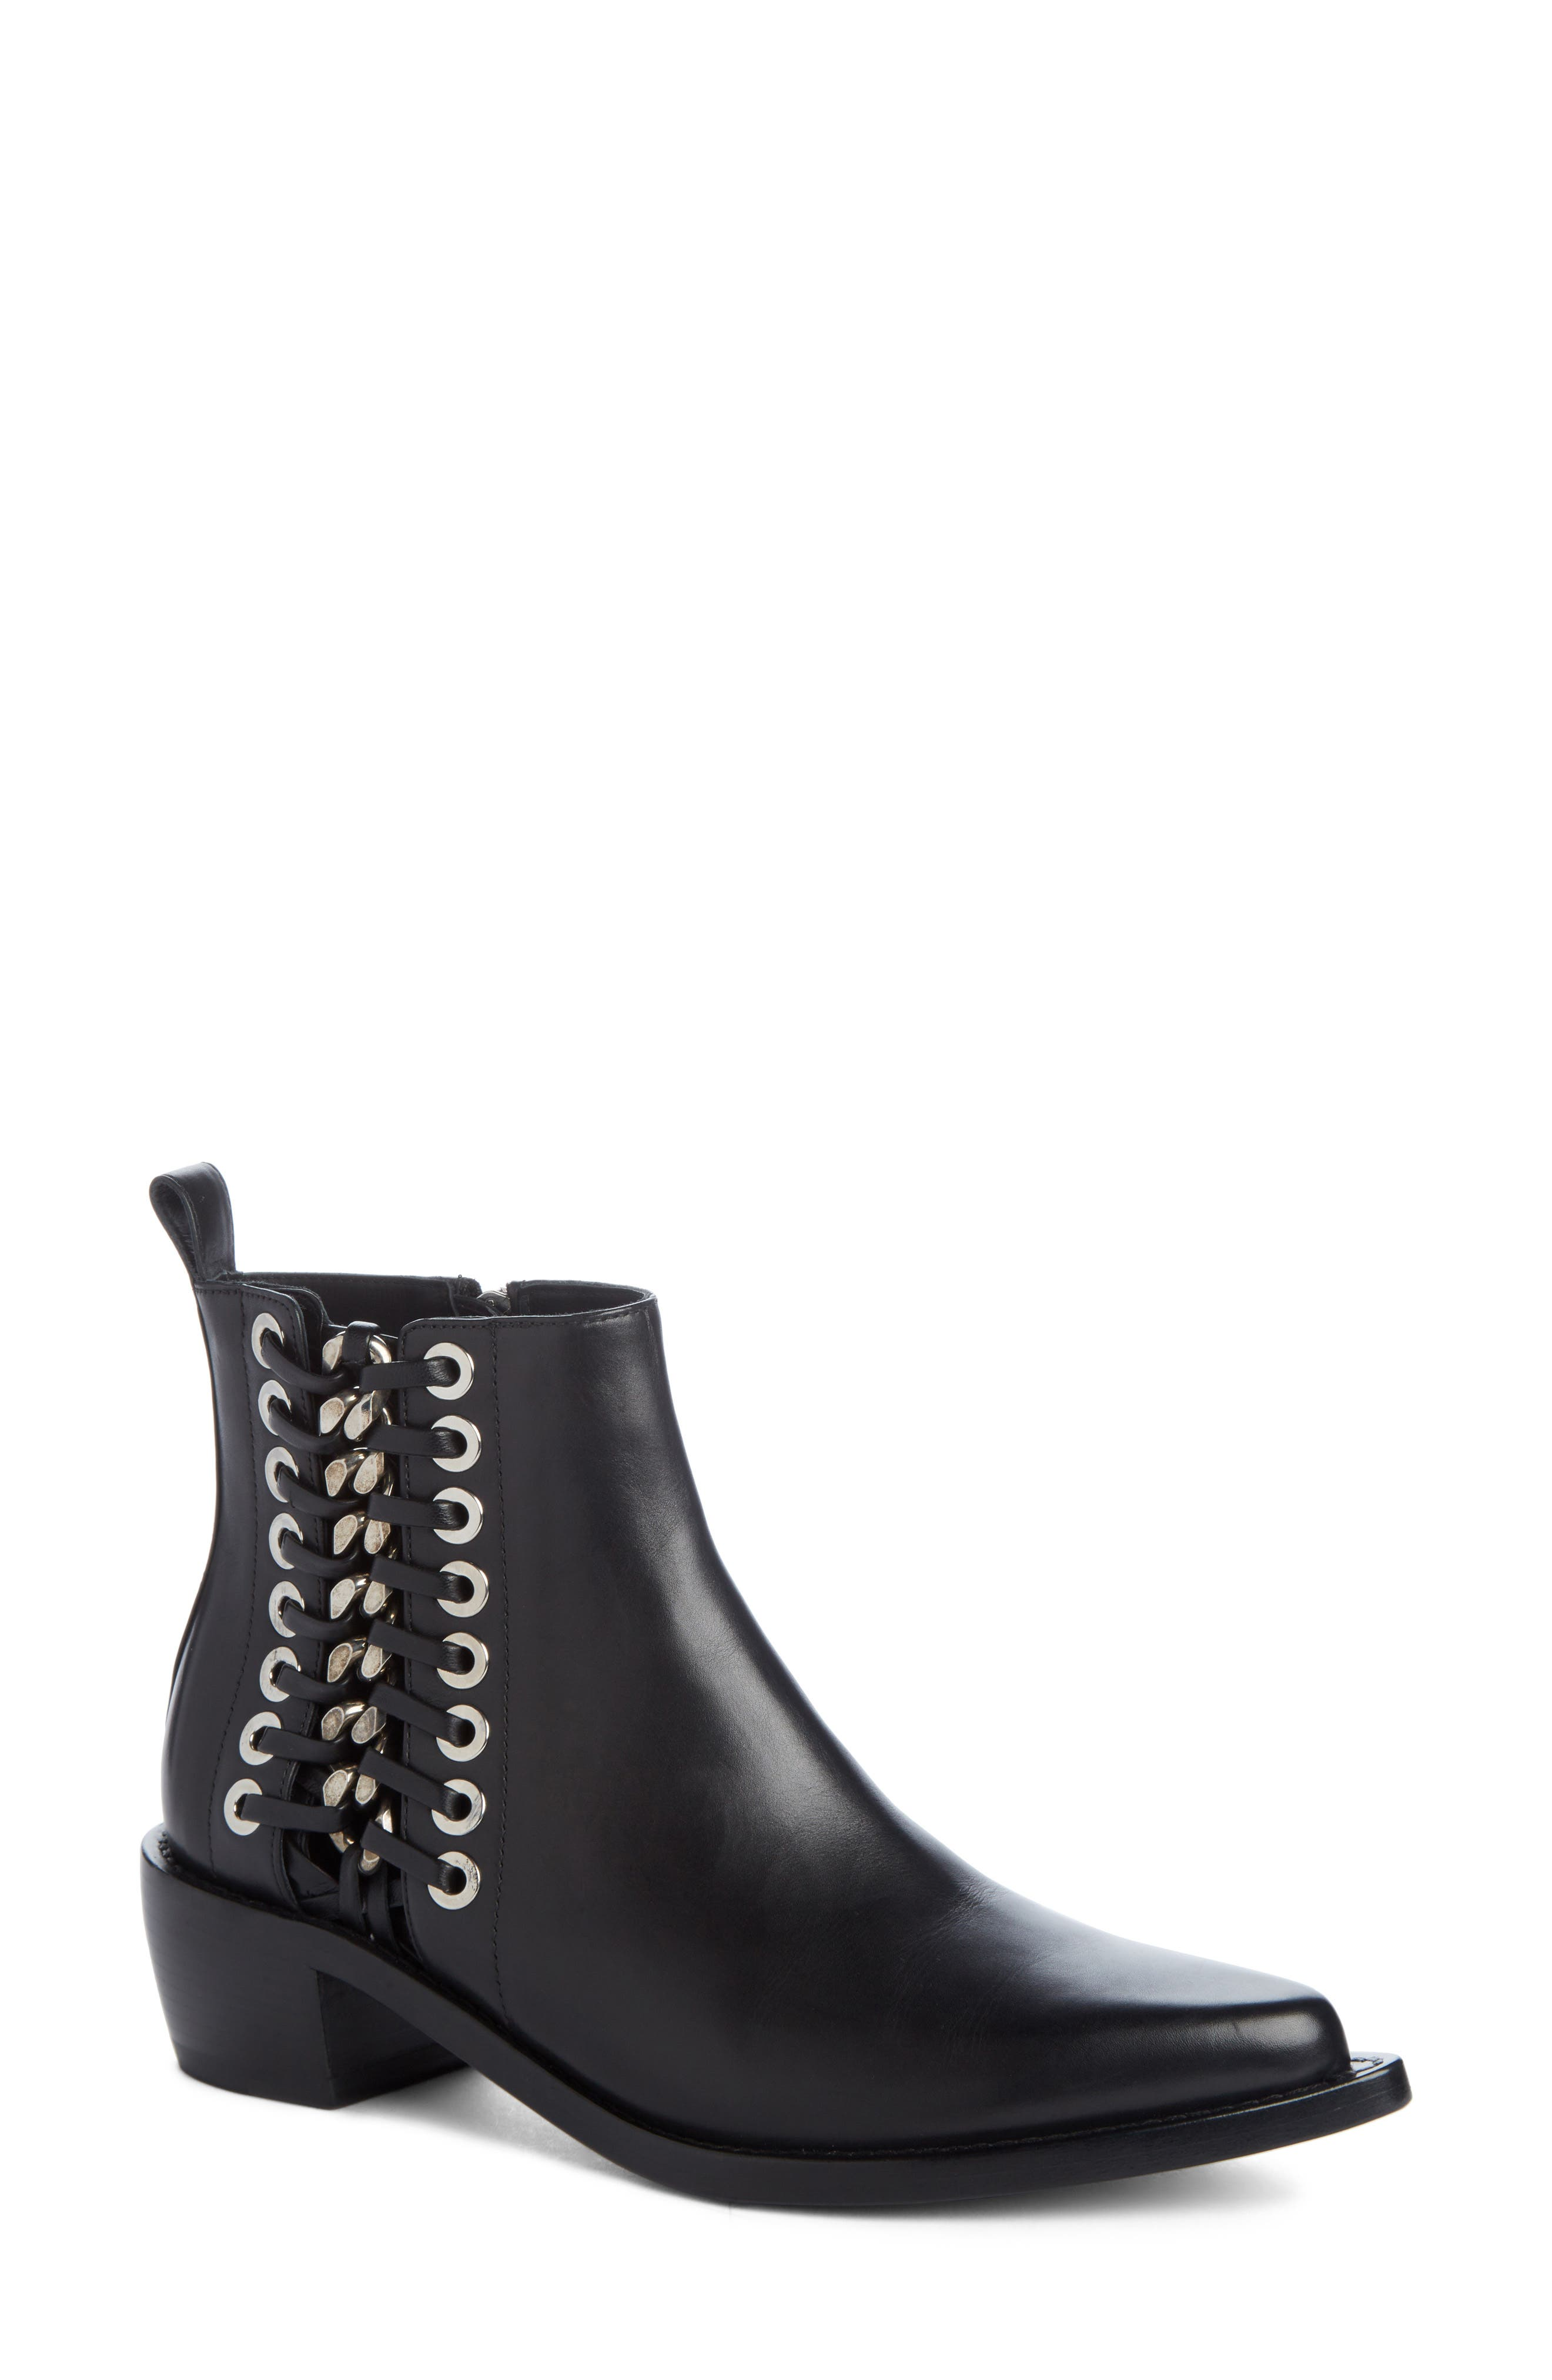 Braided Chain Boot,                         Main,                         color, Black/ Silver